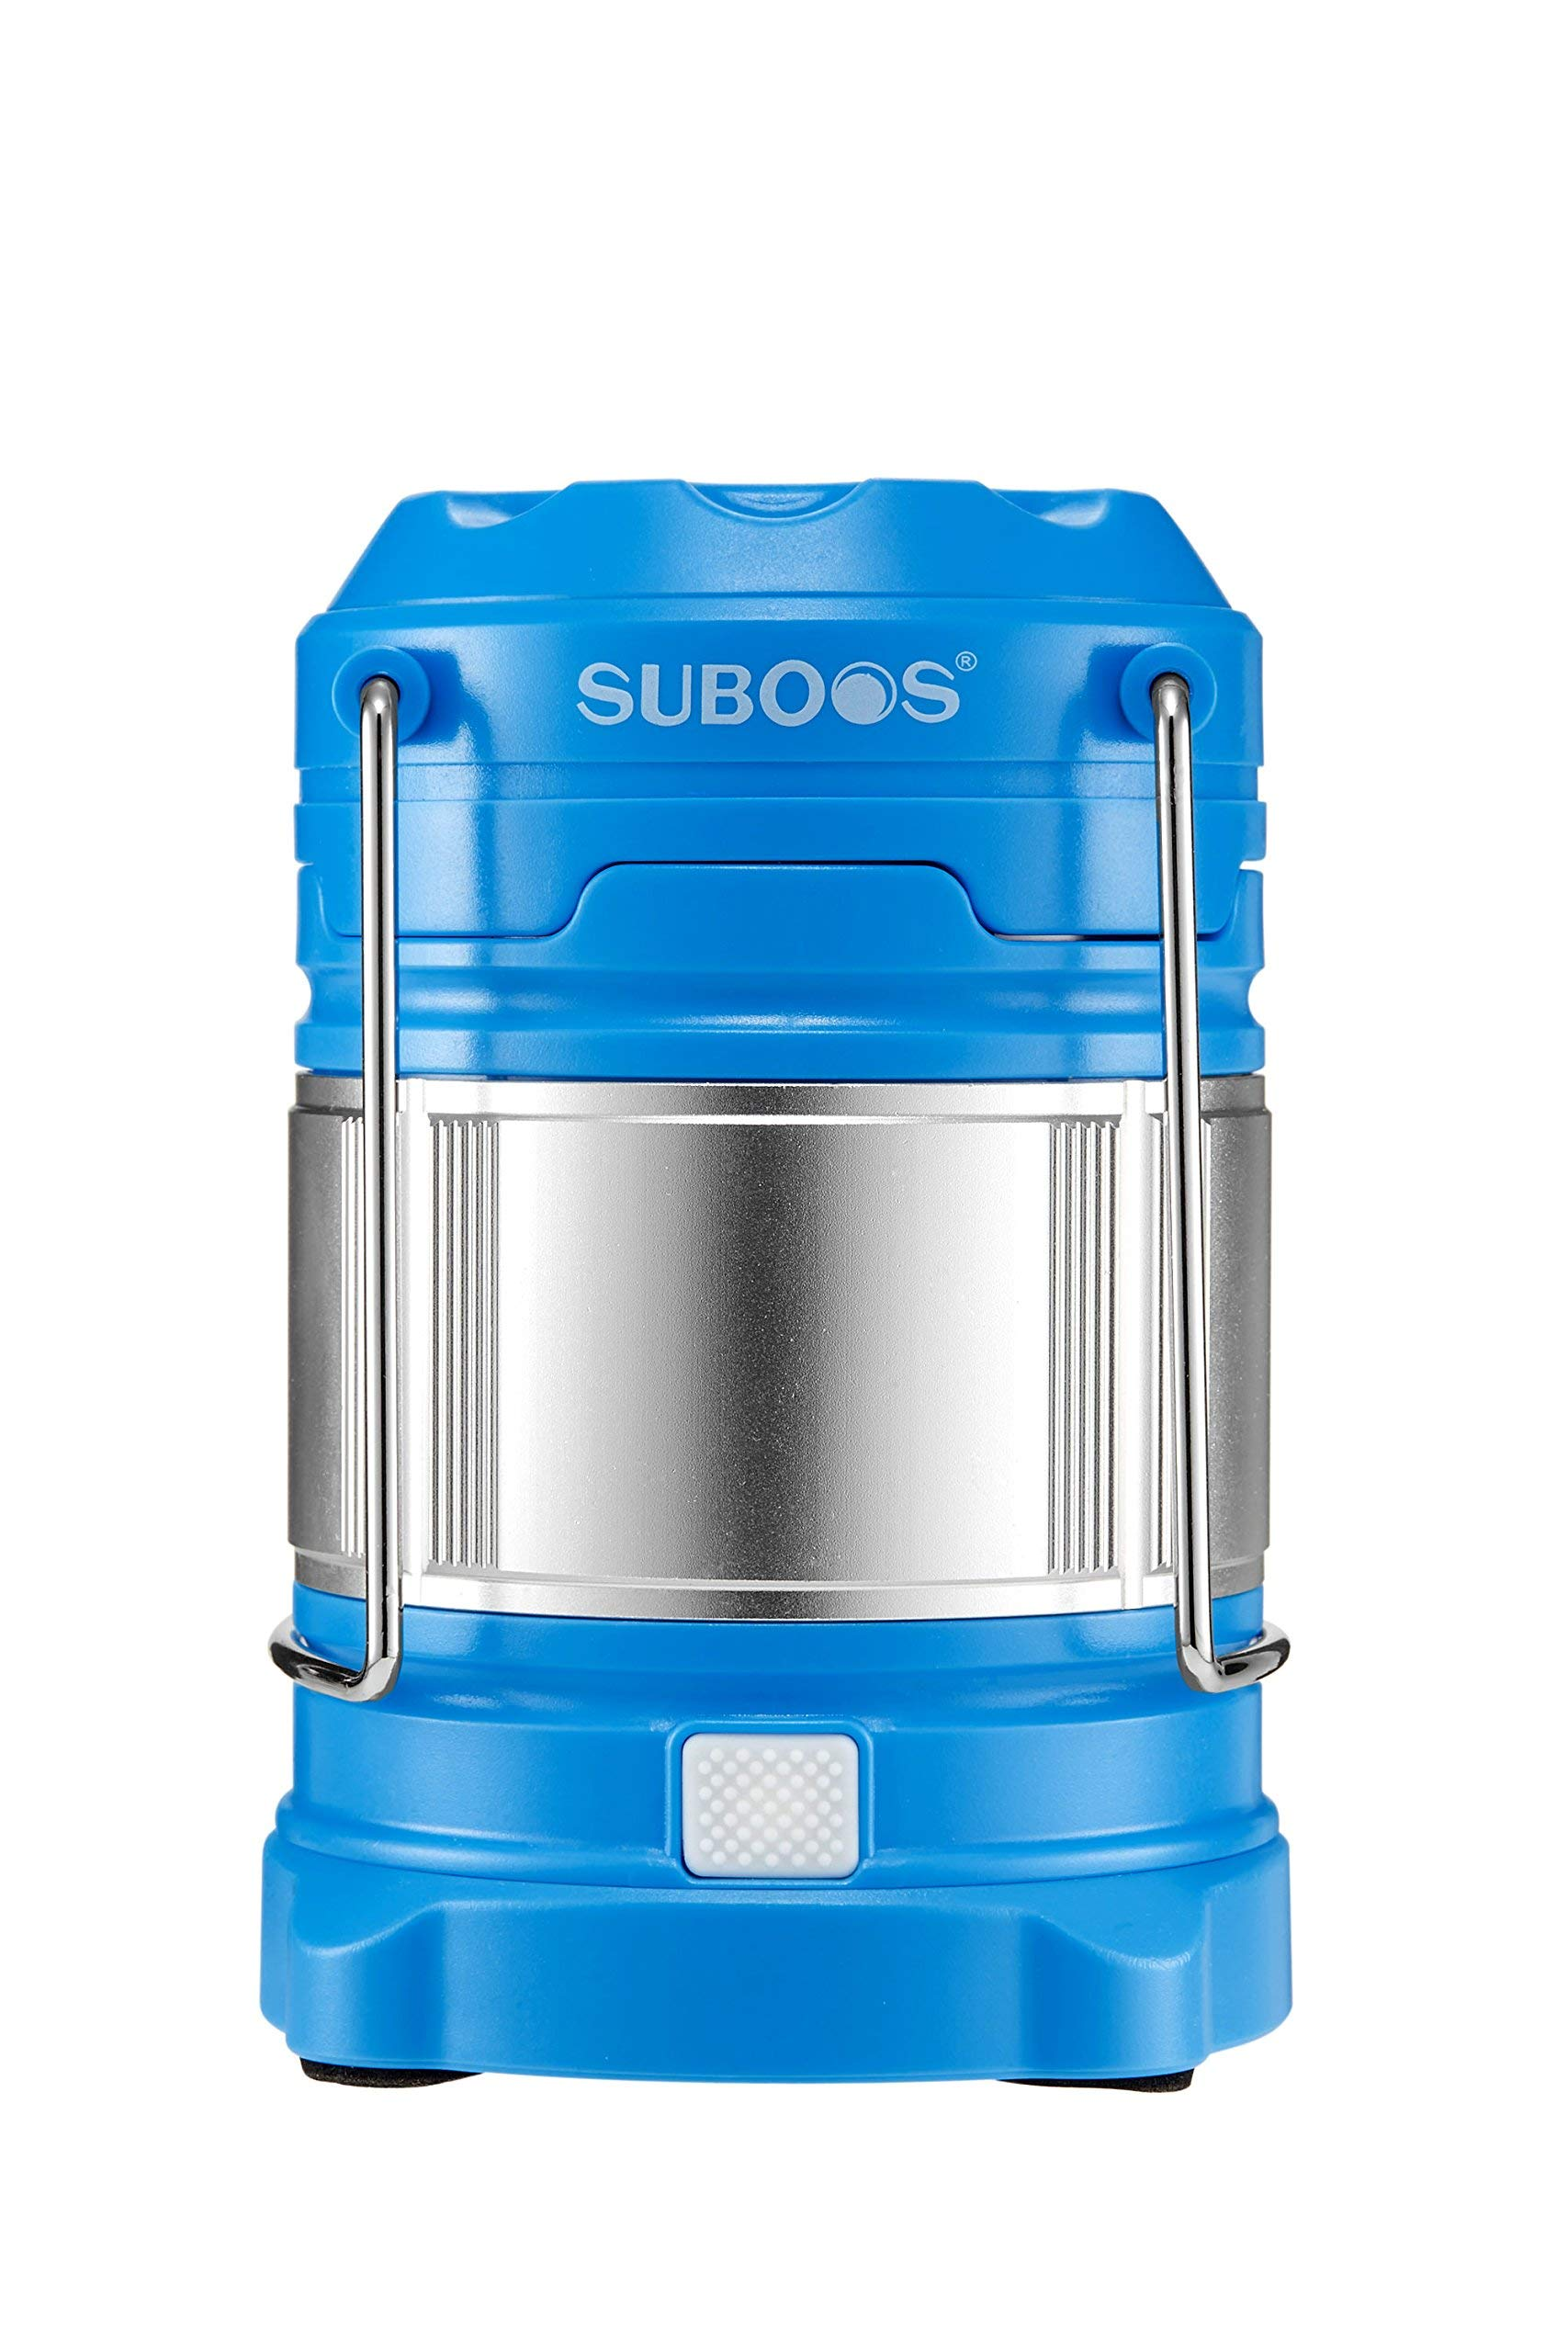 SUBOOS Ultimate Rechargeable LED Lantern and 5200mAh Powerbank - 4 Light Modes-Dual Power - Great for Camping Hiking, Auto Emergencies - Batteries and Hanging Clip Included(Blue) by SUBOOS